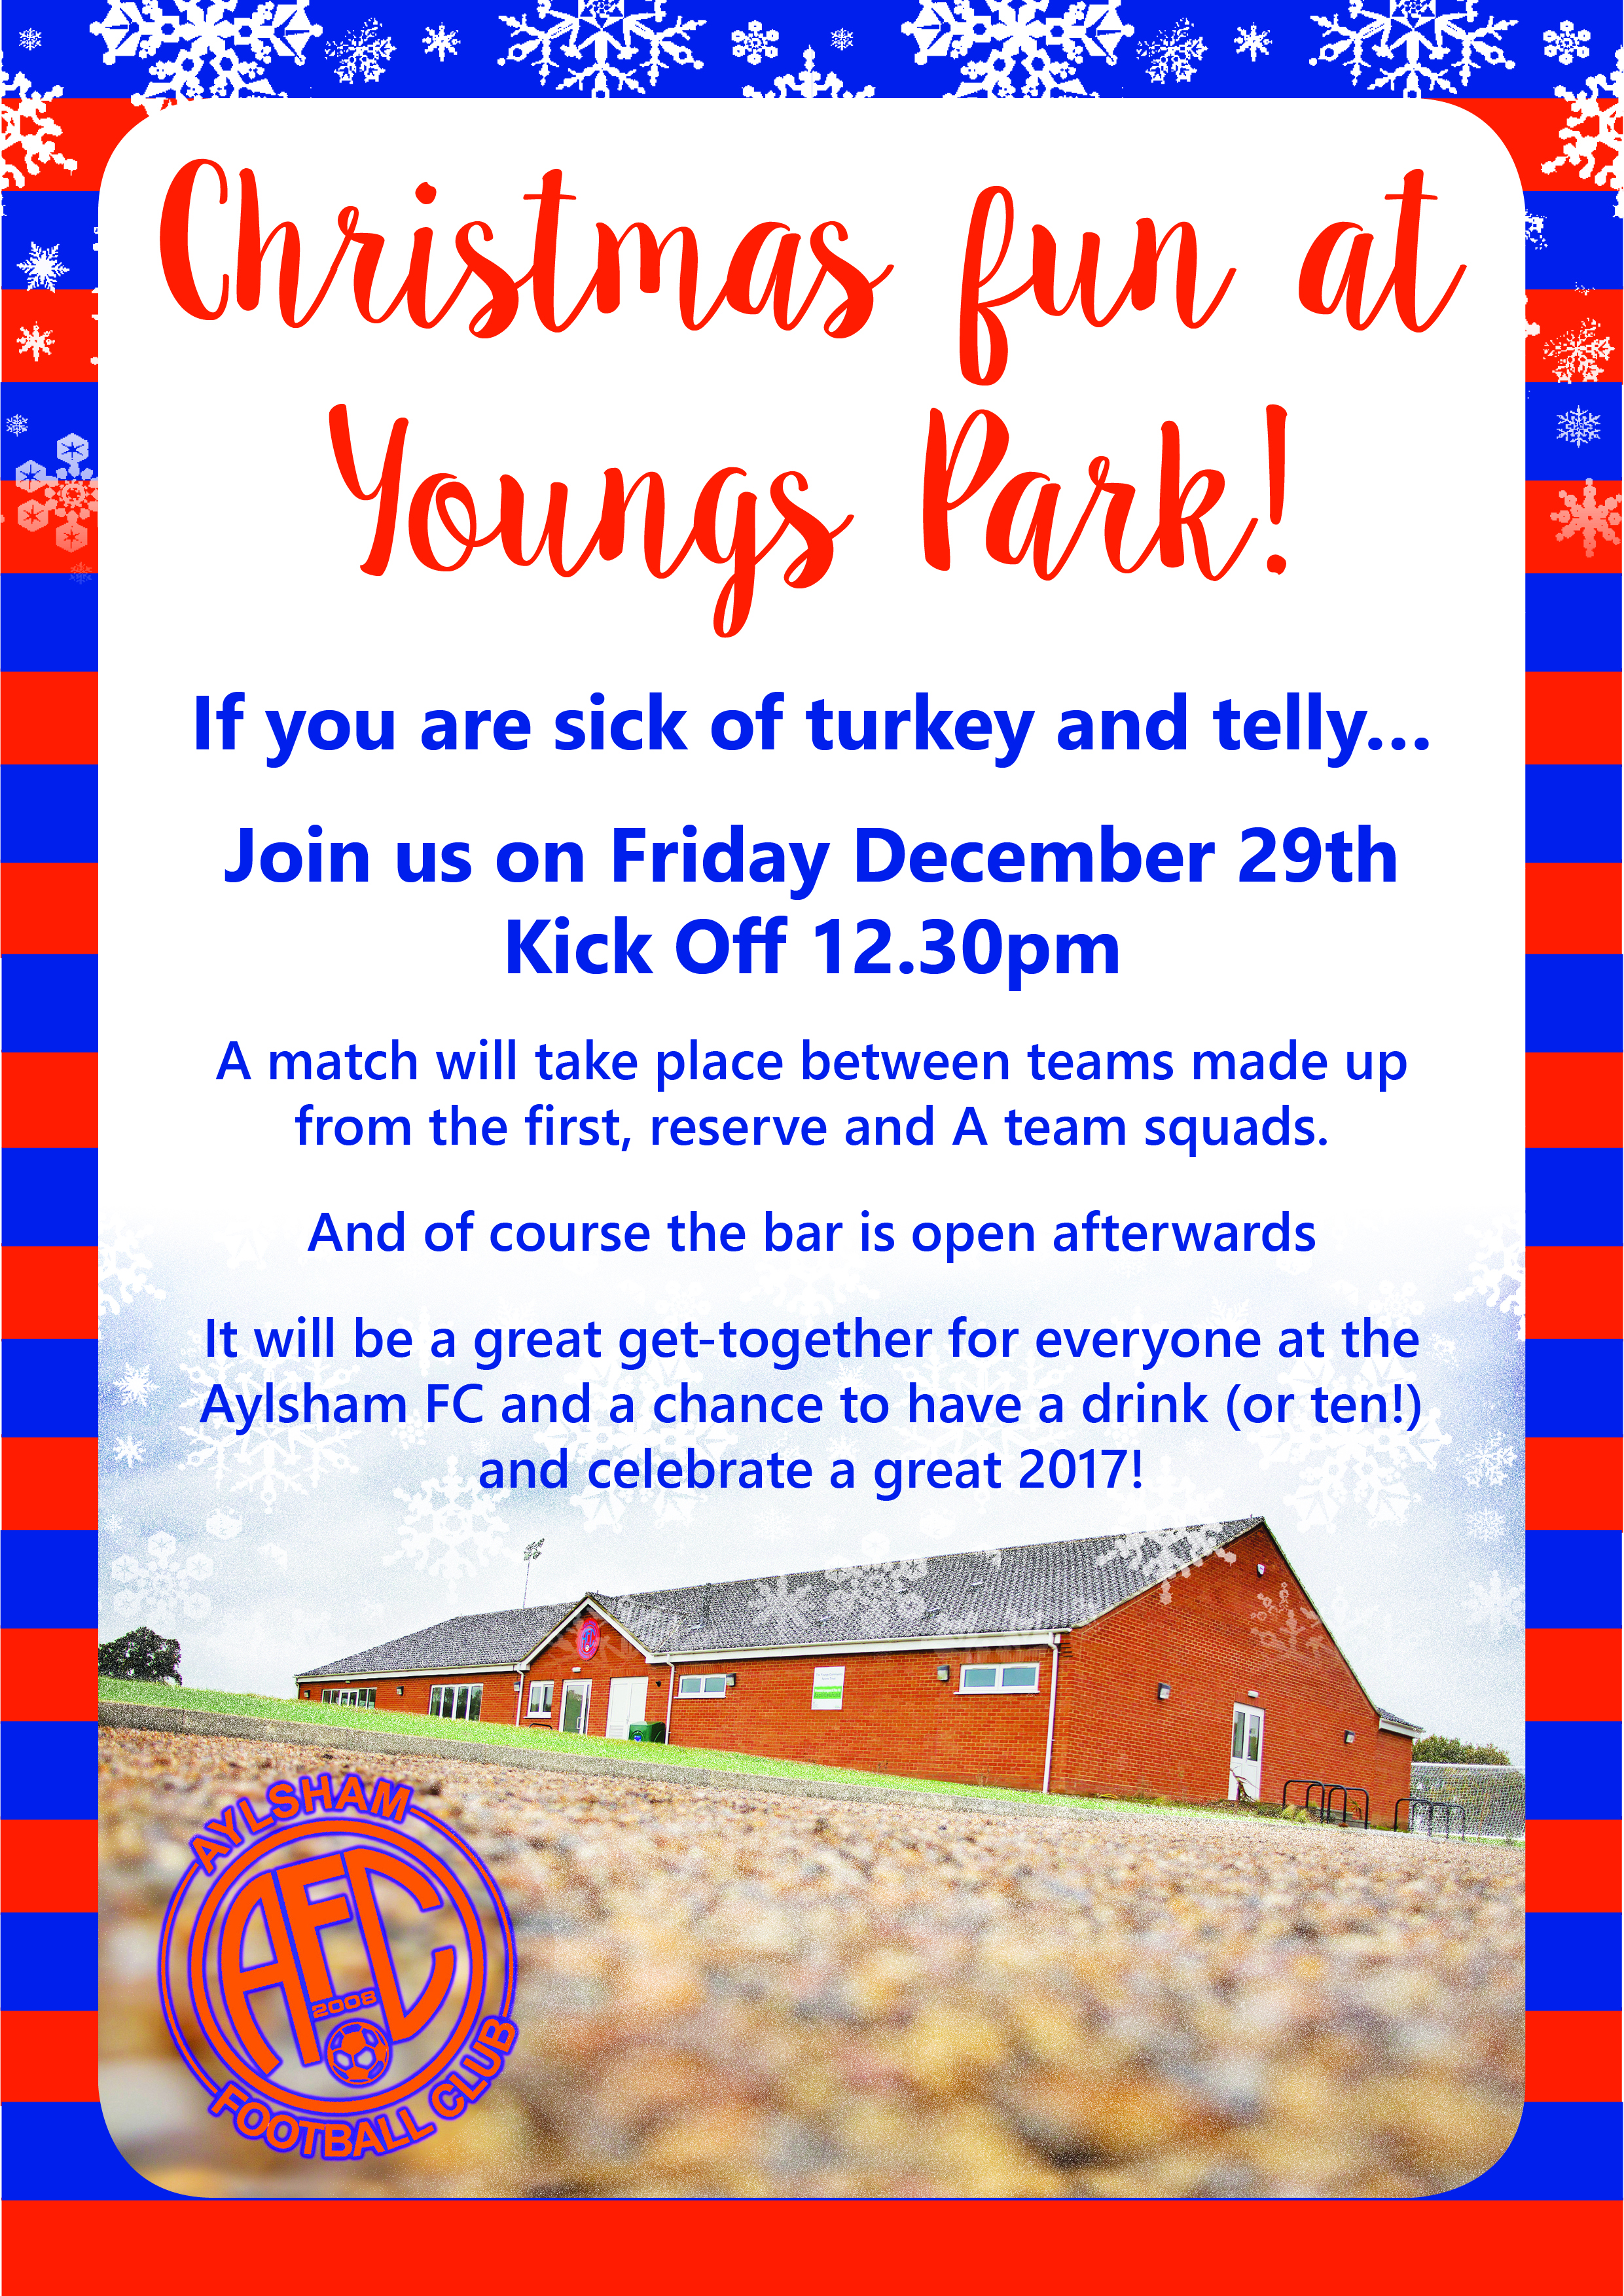 Upcoming events at Youngs Park